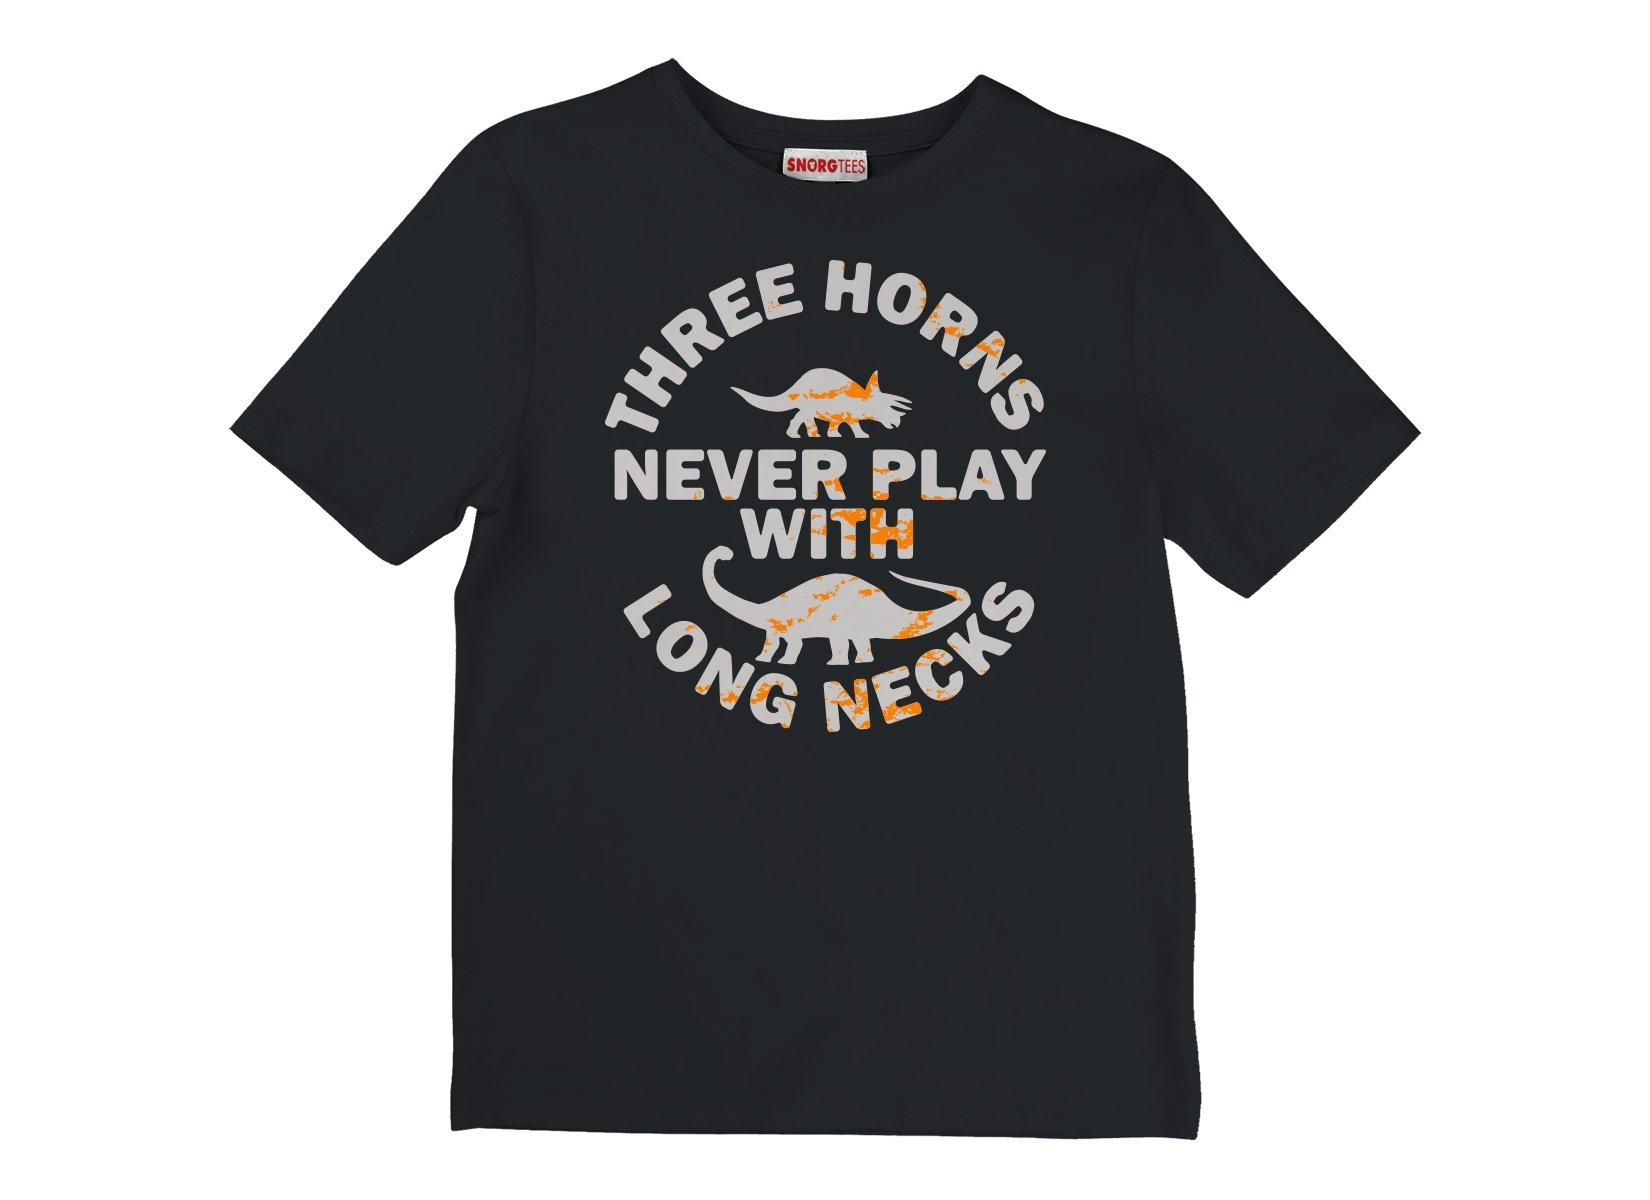 Three Horns Never Play With Long Necks on Kids T-Shirt